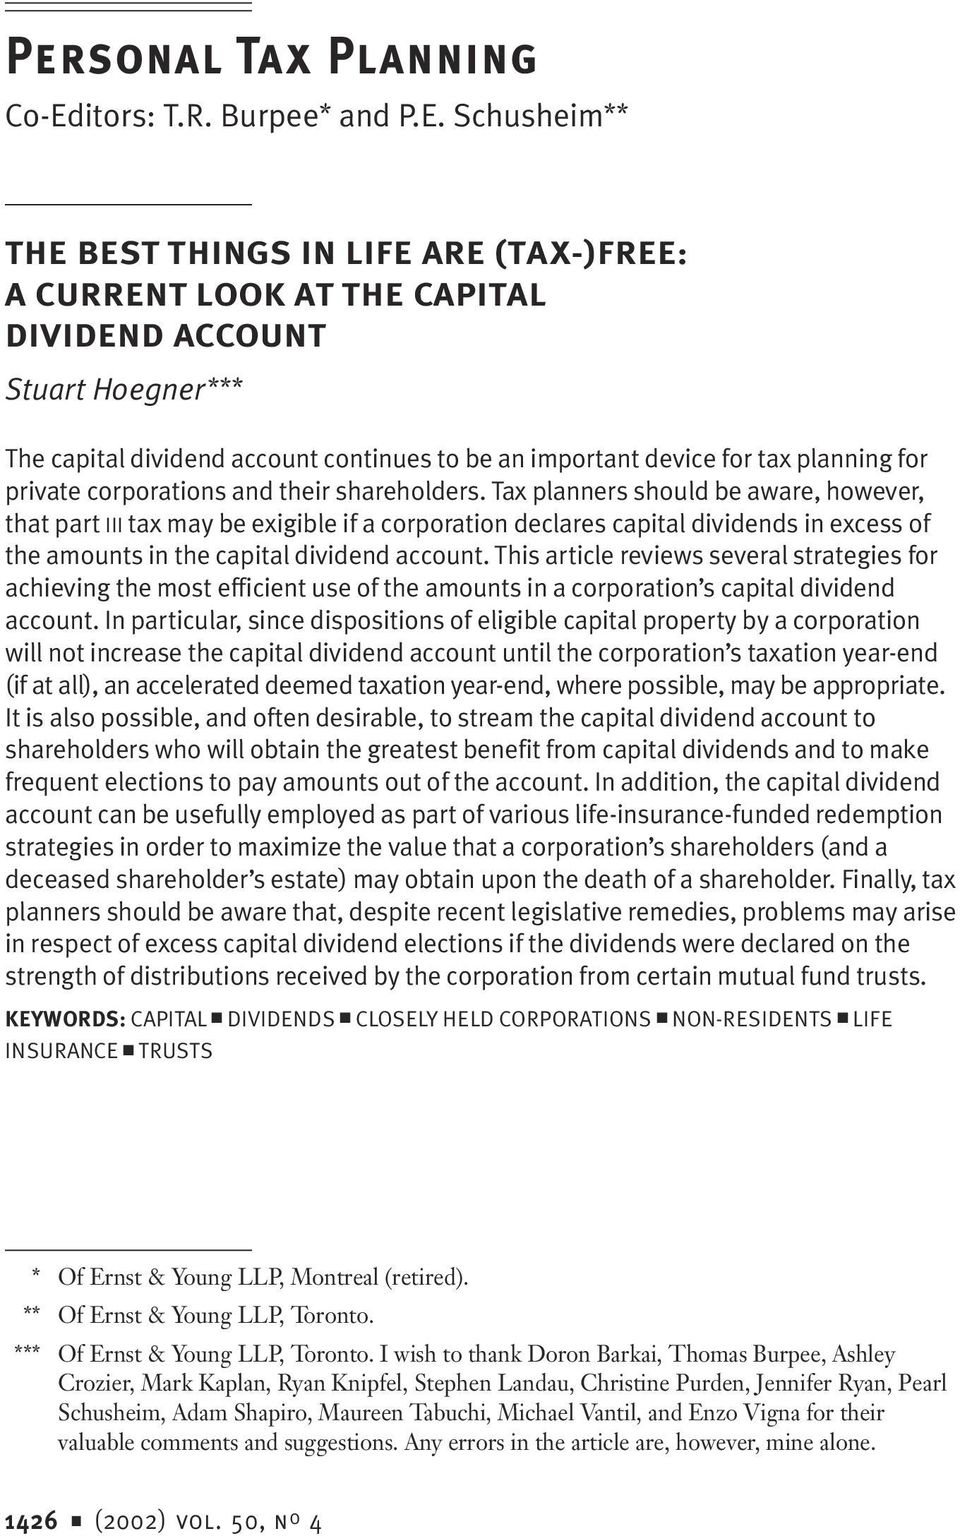 Schusheim** THE BEST THINGS IN LIFE ARE (TAX-)FREE: A CURRENT LOOK AT THE CAPITAL DIVIDEND ACCOUNT Stuart Hoegner*** The capital dividend account continues to be an important device for tax planning